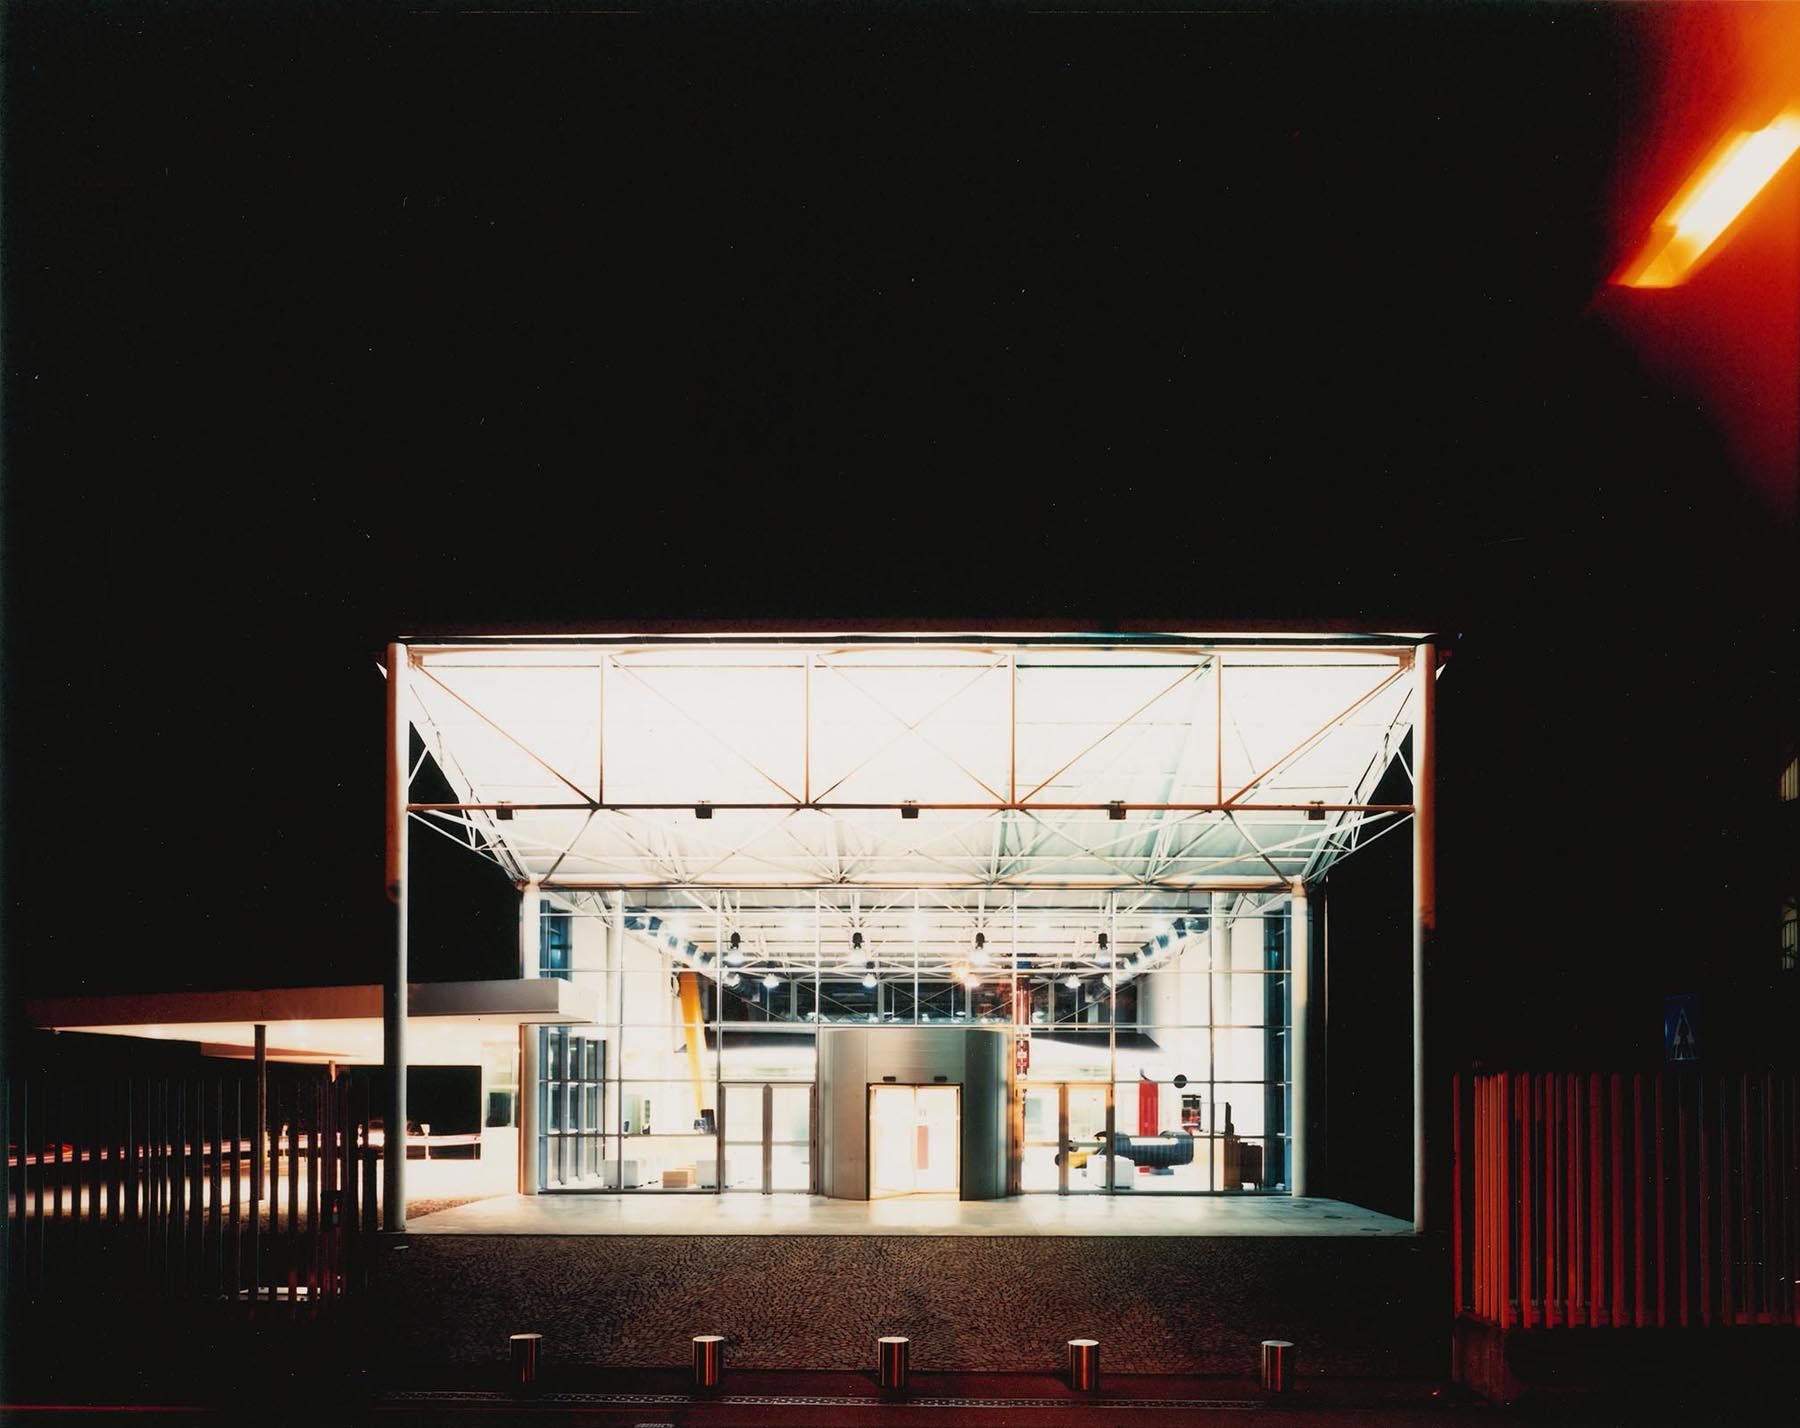 Entrance Building and Products Exhibition, Dalmine, Italy